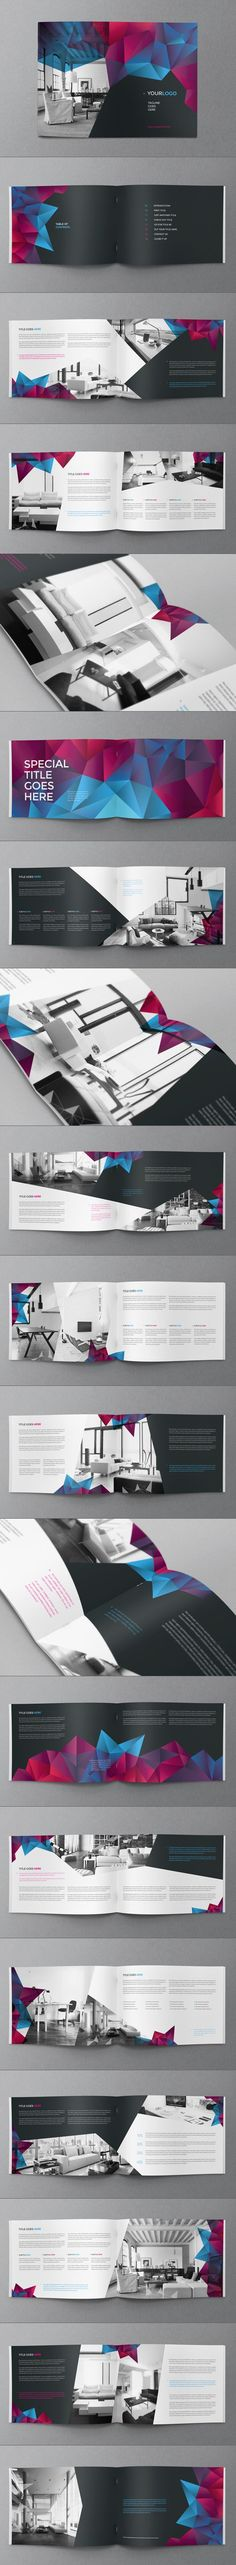 Cool Modern Brochure by Abra Design, via Behance: